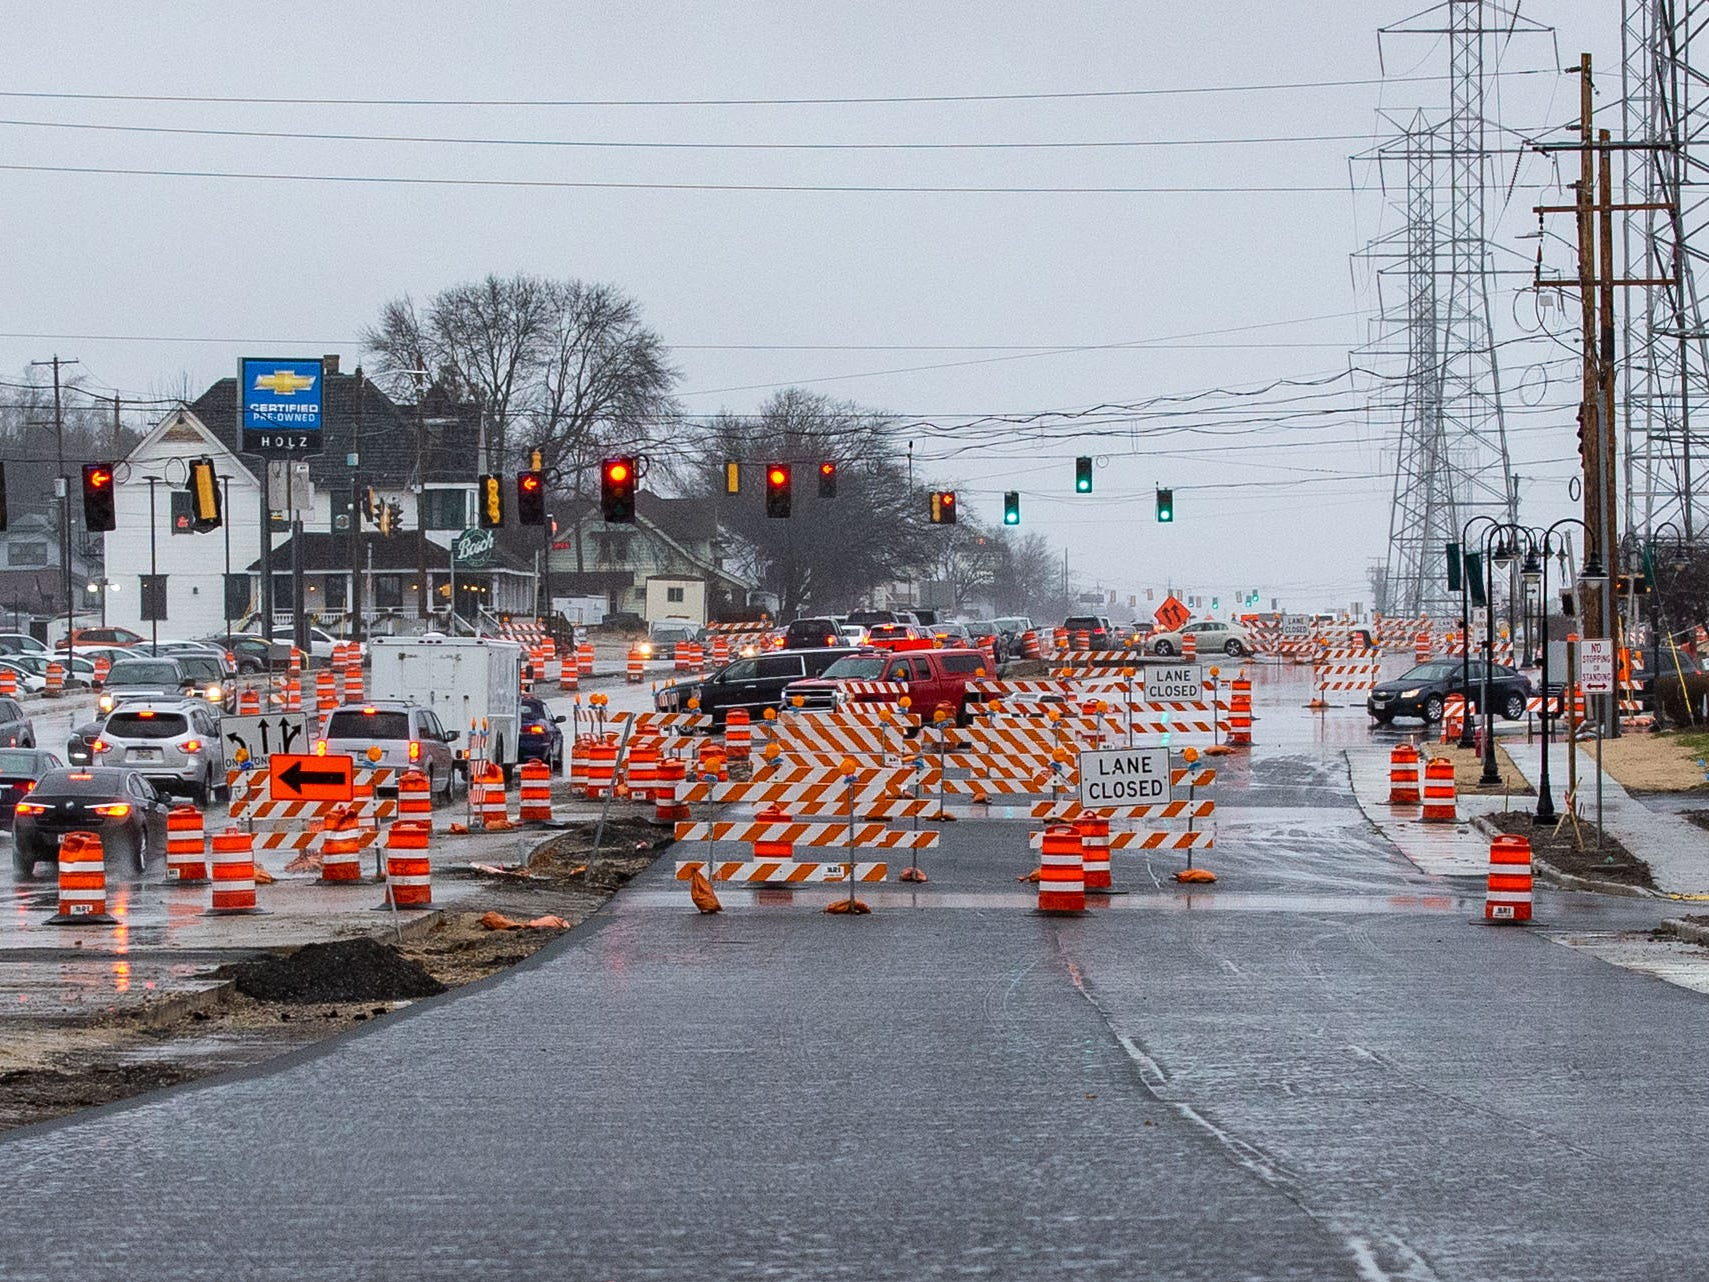 Northbound lanes remain closed on South 108th St. in Hales Corners on Sunday, Dec. 2, 2018. Construction issues have delayed the project.